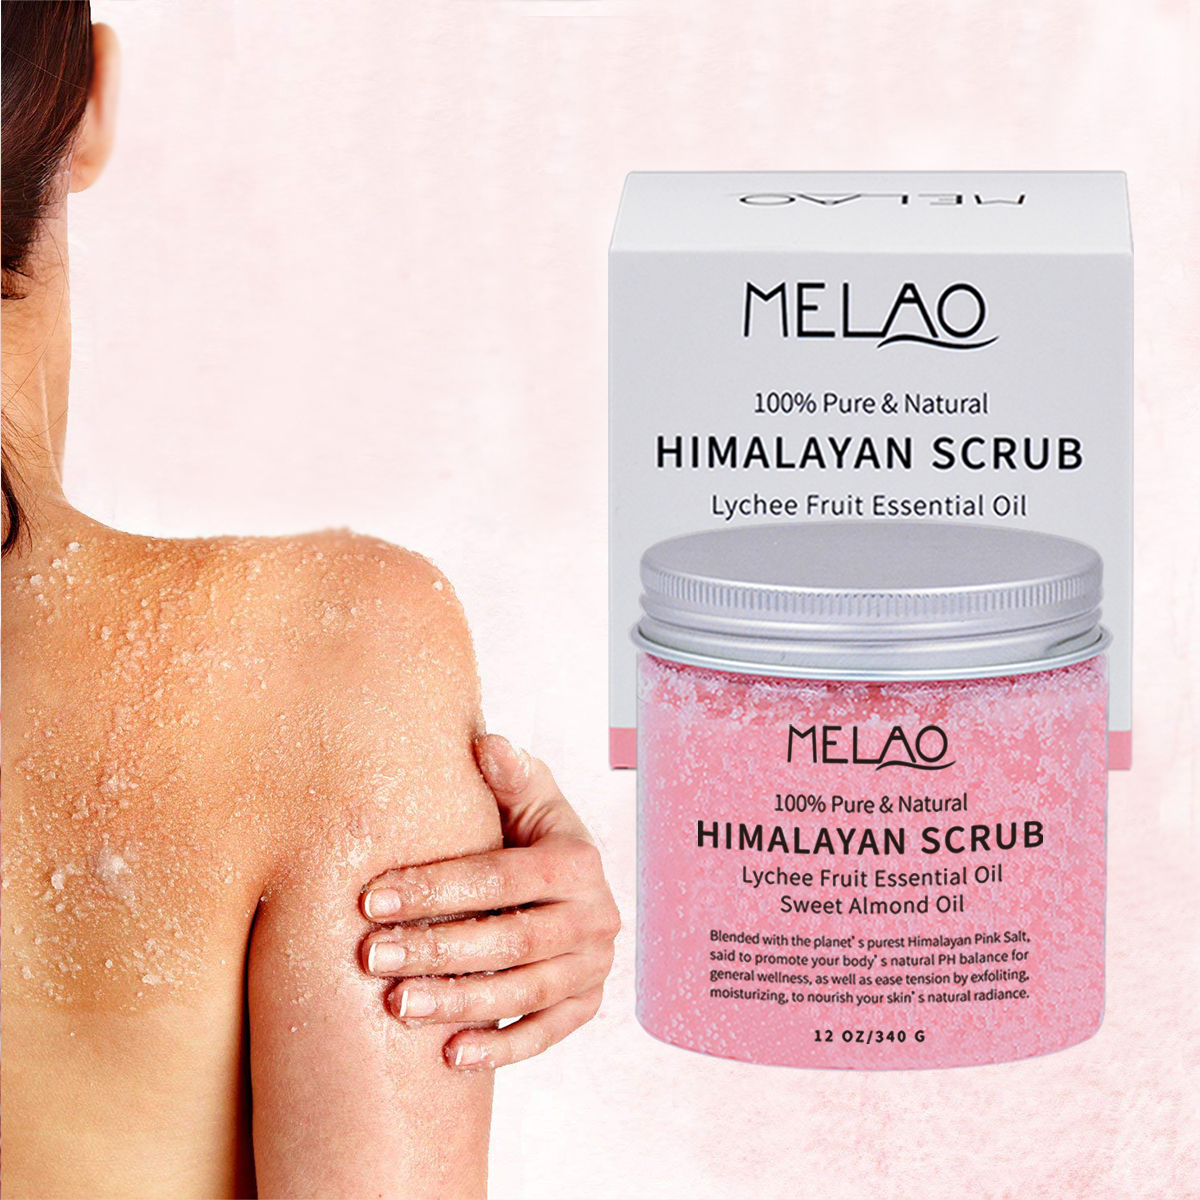 Pure Himalayan Salt Body Scrub with Lychee Essential Oil, All Natural Scrub to Exfoliate & Moisturize Skin 340g